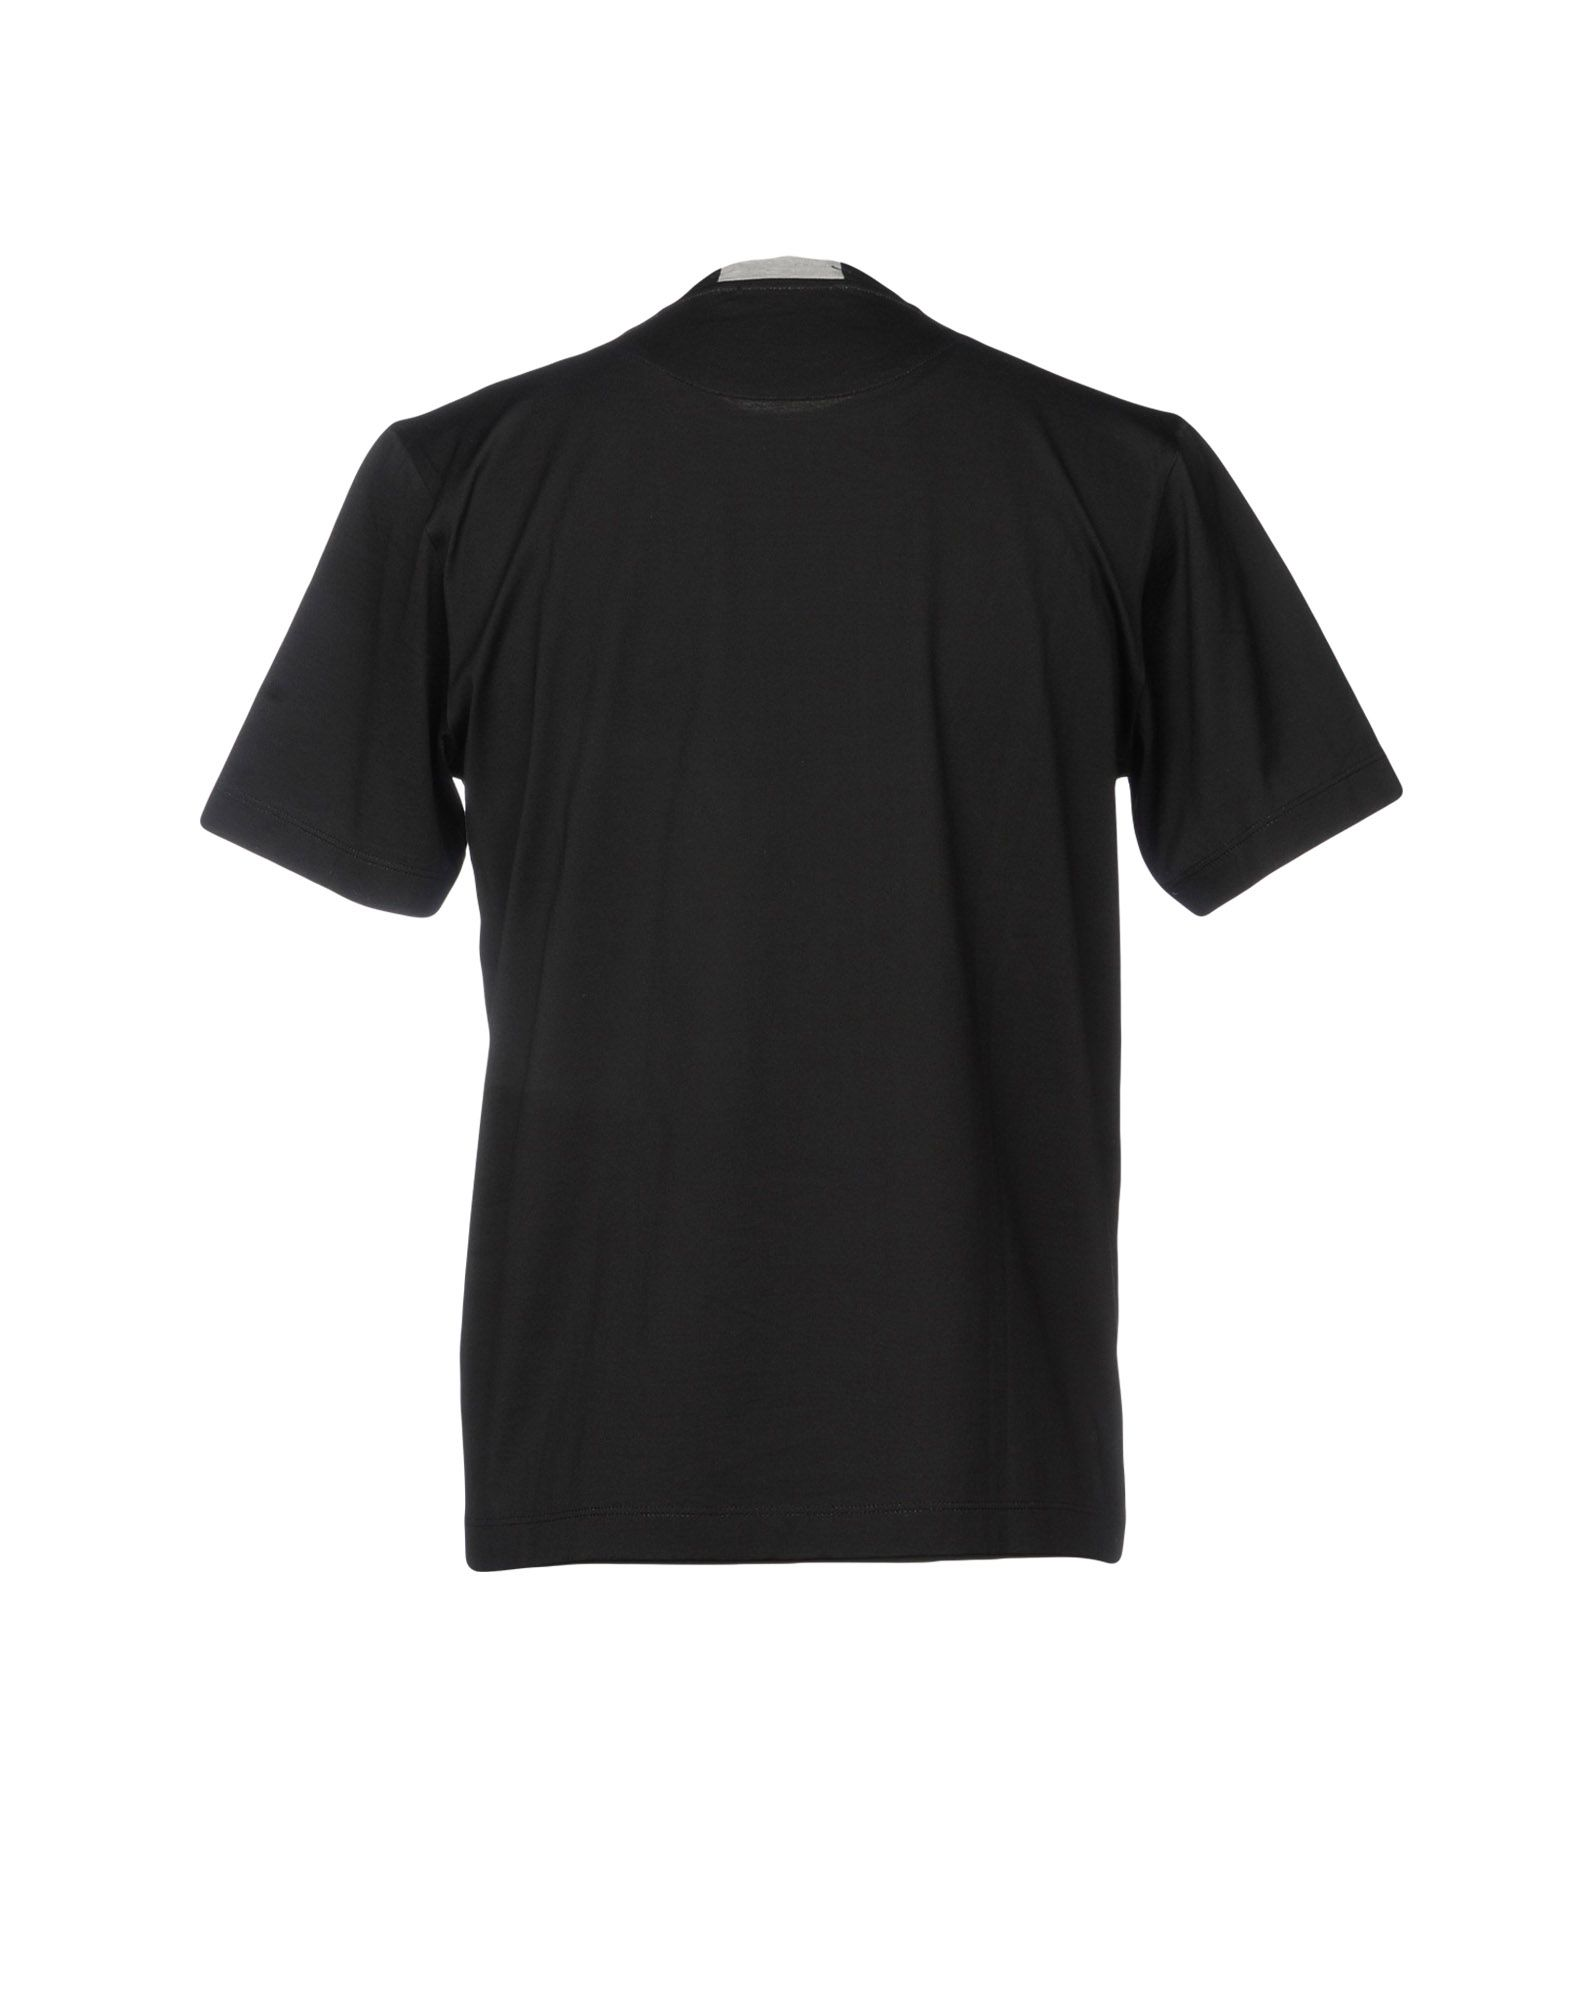 T-Shirt 12117620FT Christopher Kane Uomo - 12117620FT T-Shirt 6a4fc1